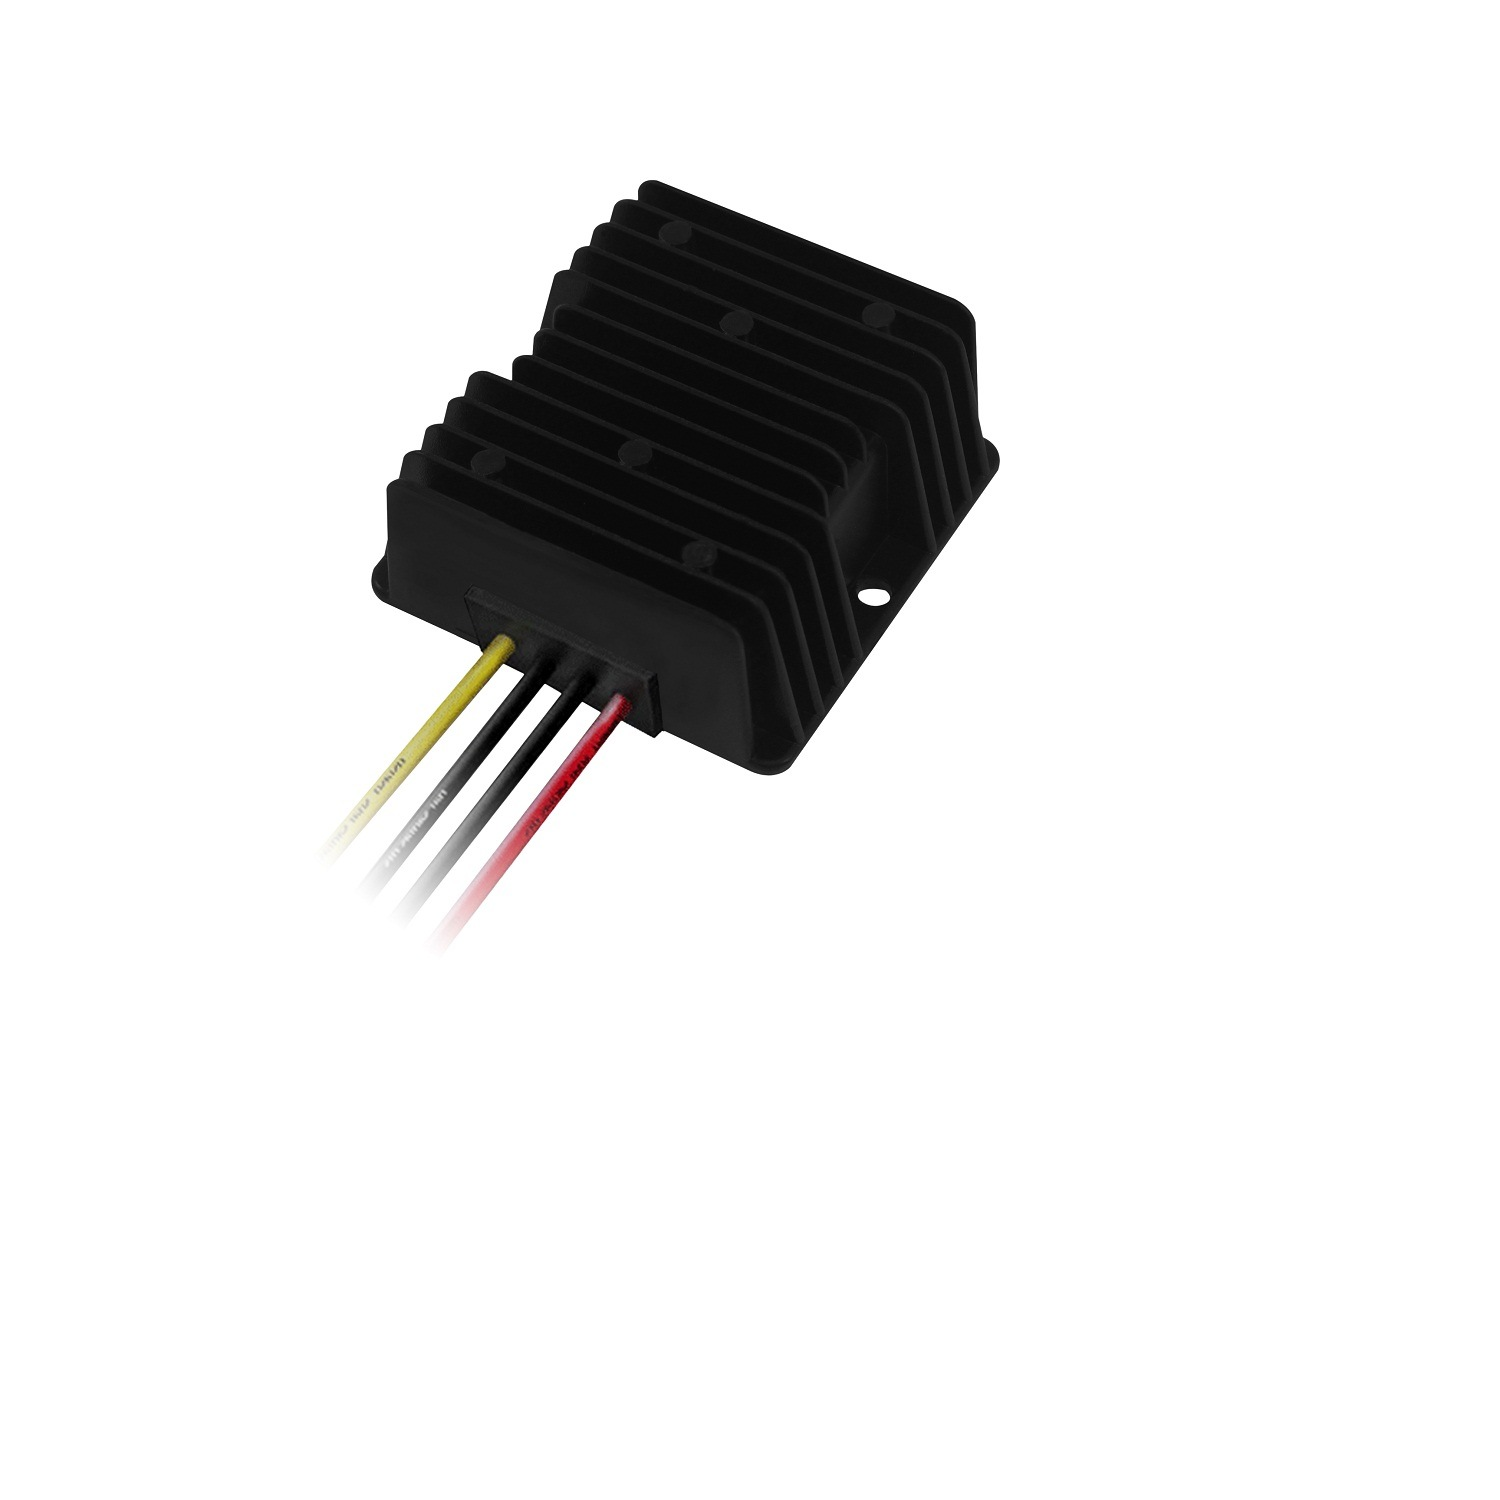 Waterproof DC-DC 12V to 36V 5A 180W Boost Power Converter